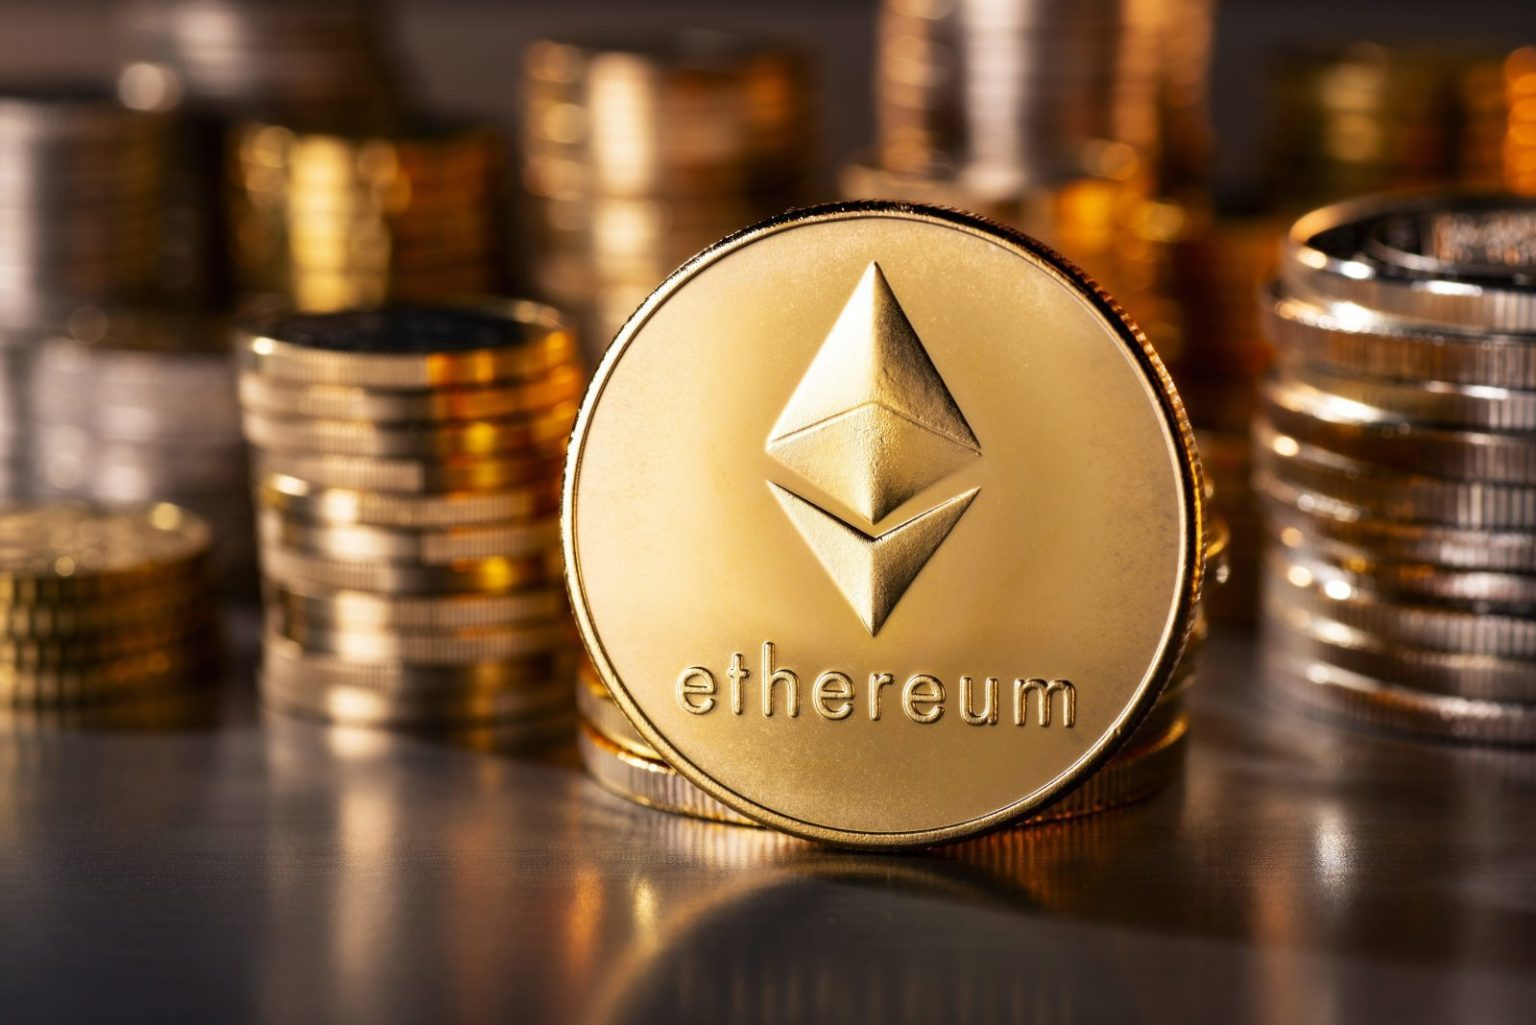 Cryptocurrency | India Among Top Countries For Most Online Searches For Ether